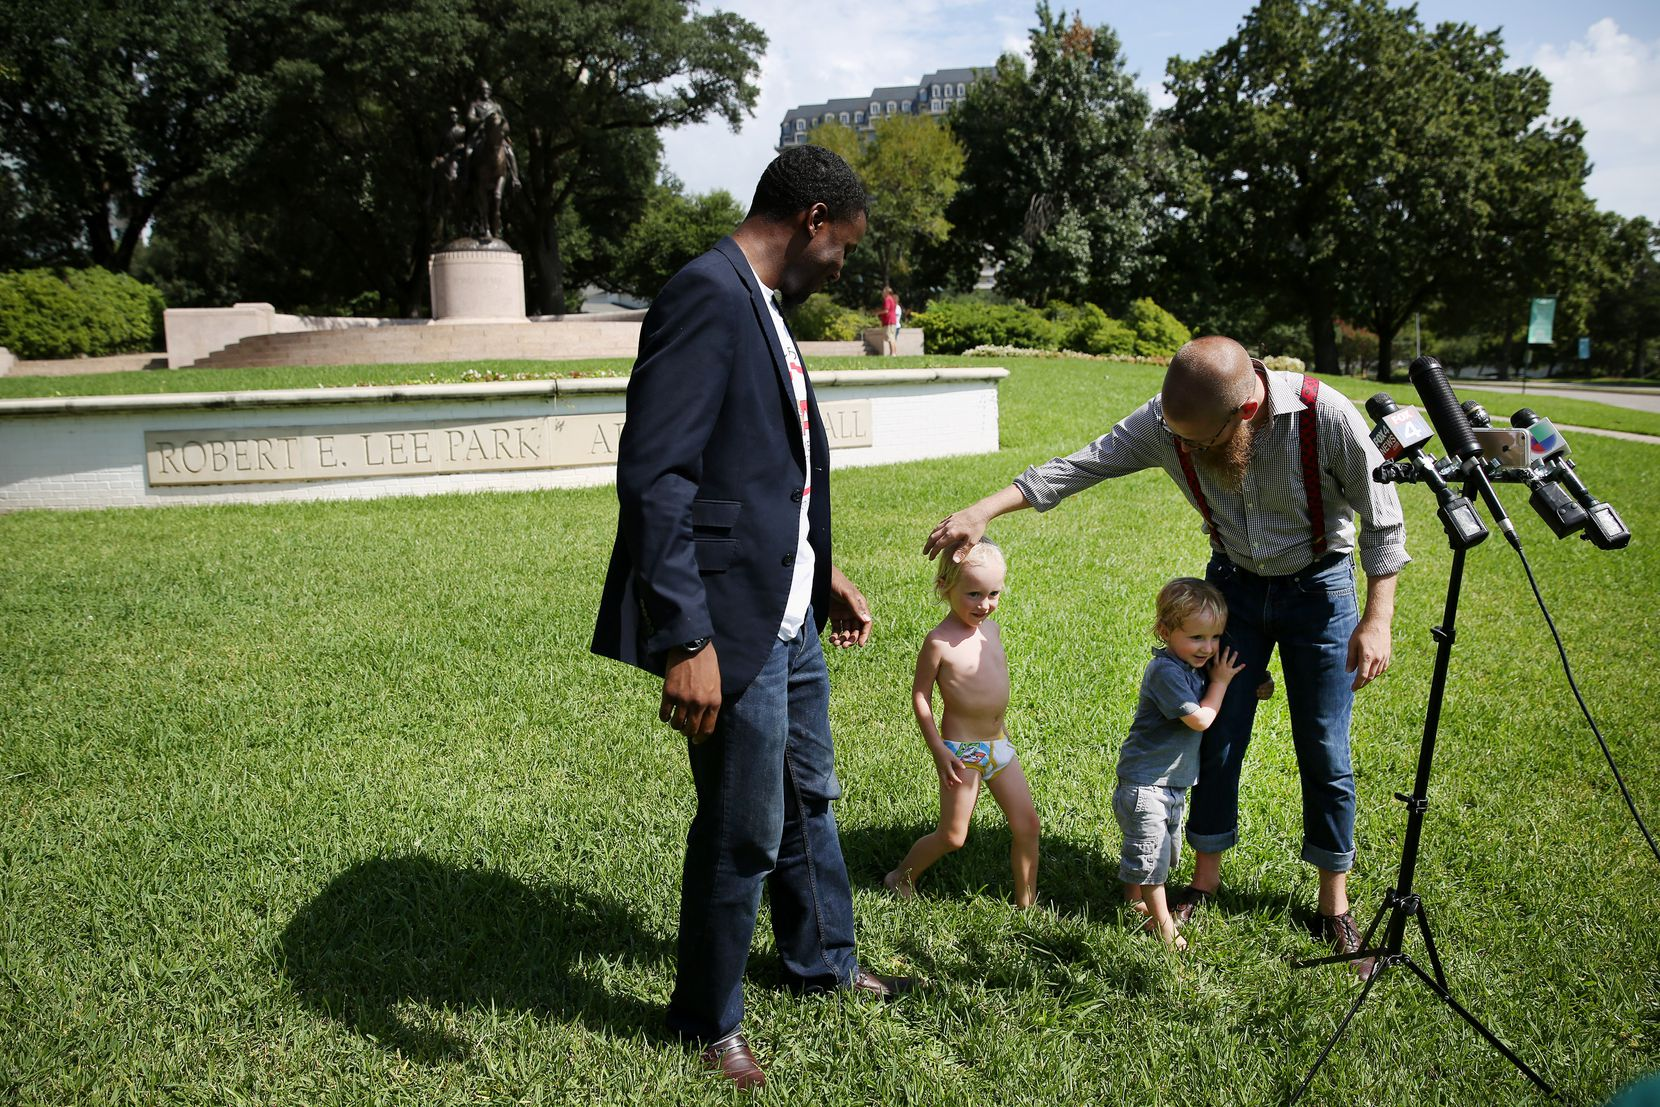 The Rev. Dr. Jeff Hood greets his children, Jeff Hood Jr. and Quinley Mandela Hood, as their father and minister Dominique Alexander speak to reporters about the Confederate statue removal efforts Aug. 18, 2017. Hood and Alexander were calling into question Dallas Mayor Mike Rawlings calling for a task force to look into the issue of removing public Confederate monuments.